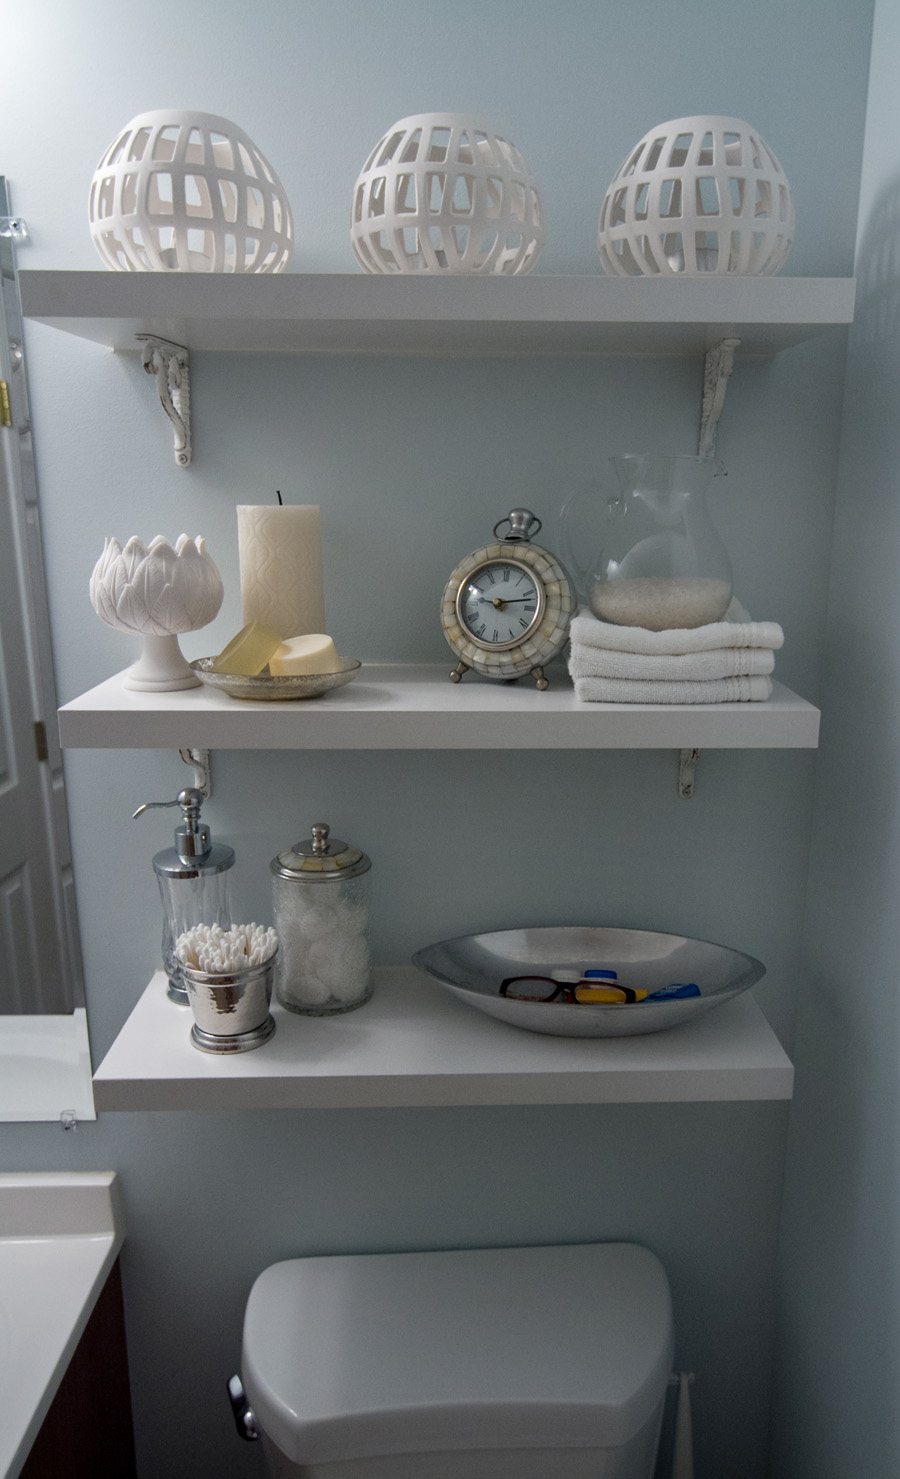 Shelves help utilize vertical space in this small master bathroom